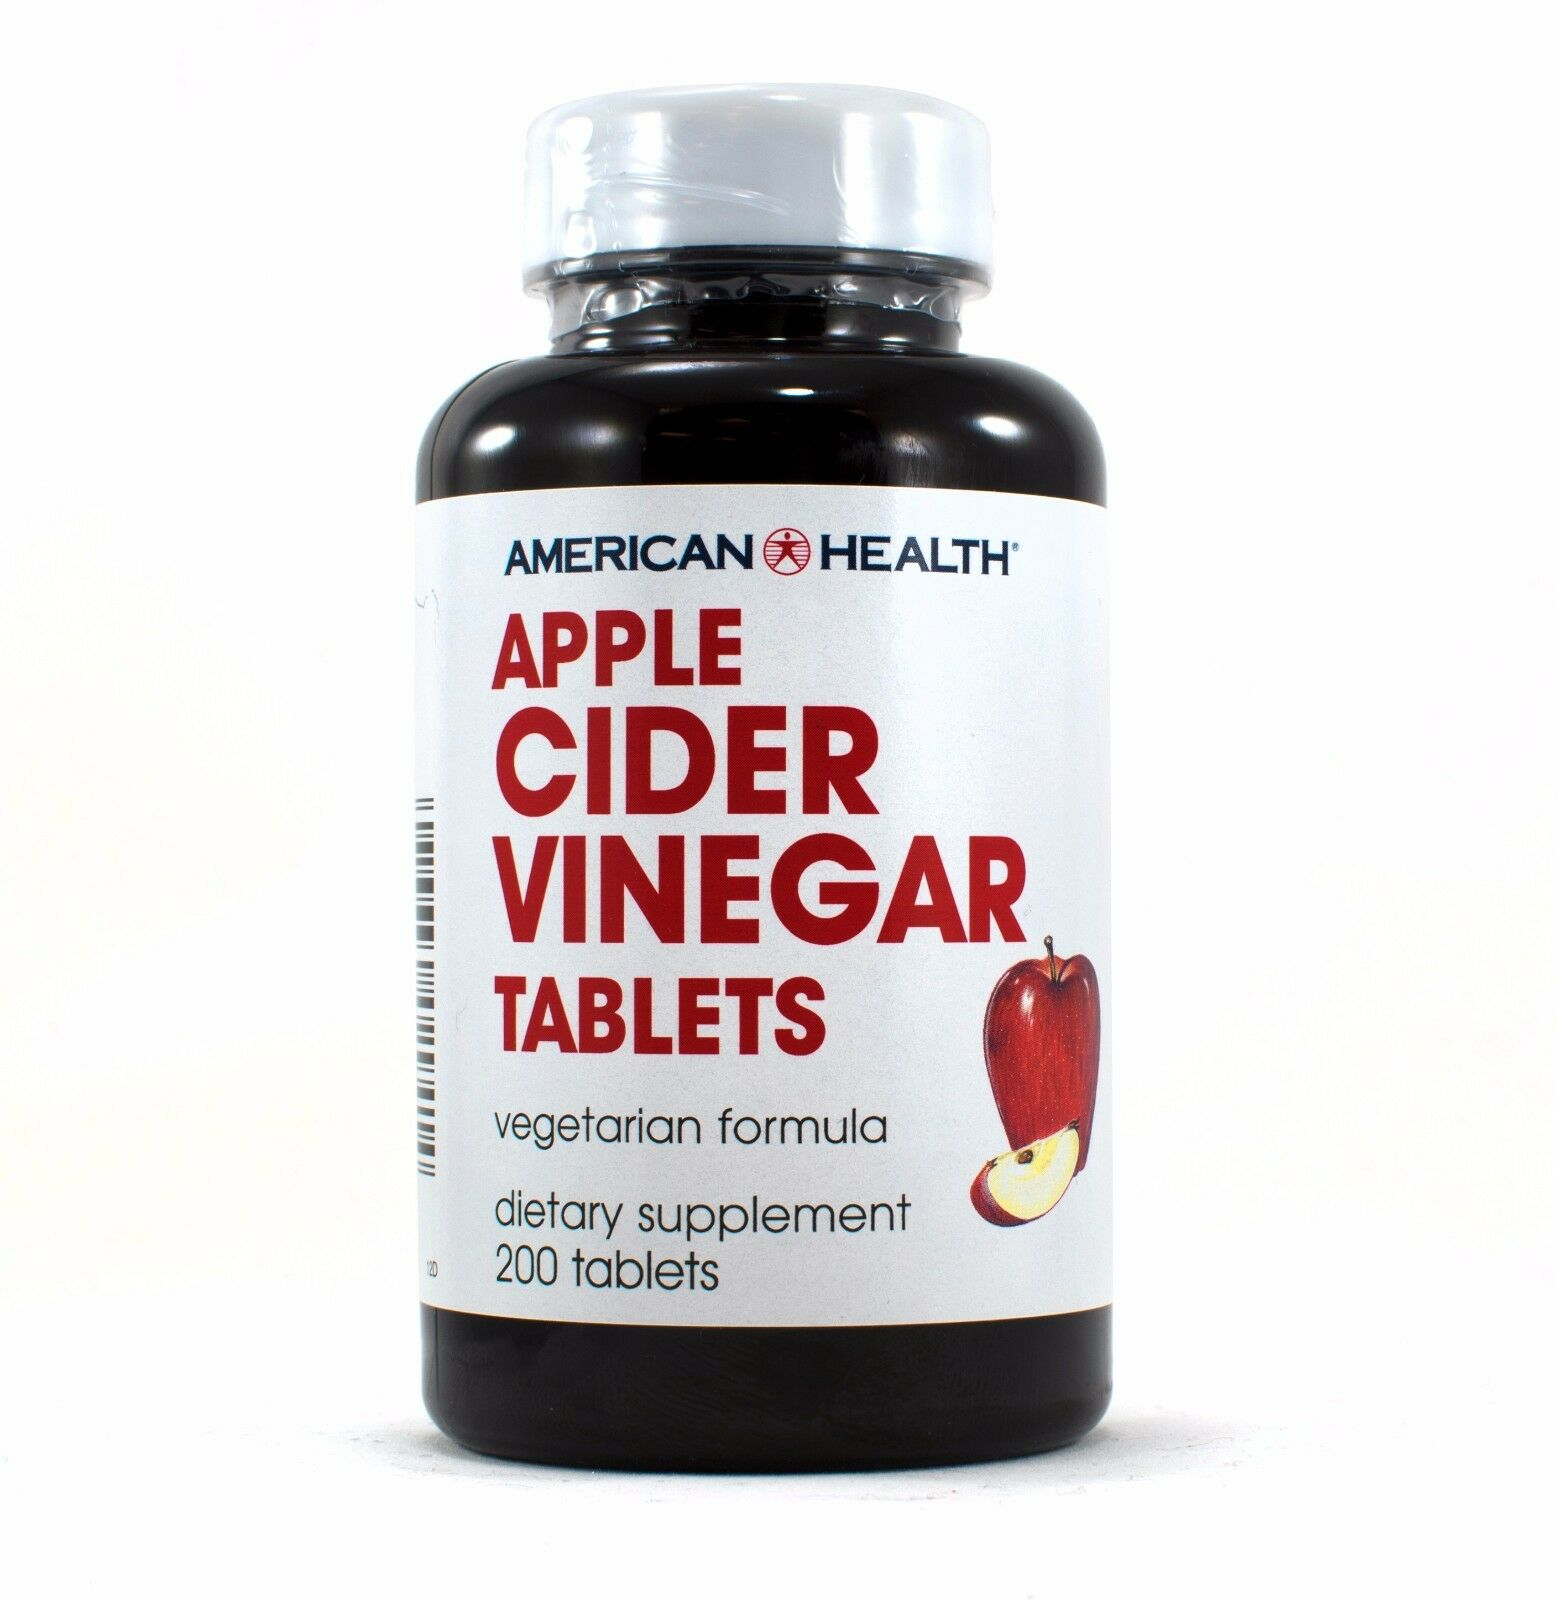 Apple cider vinegar expiration